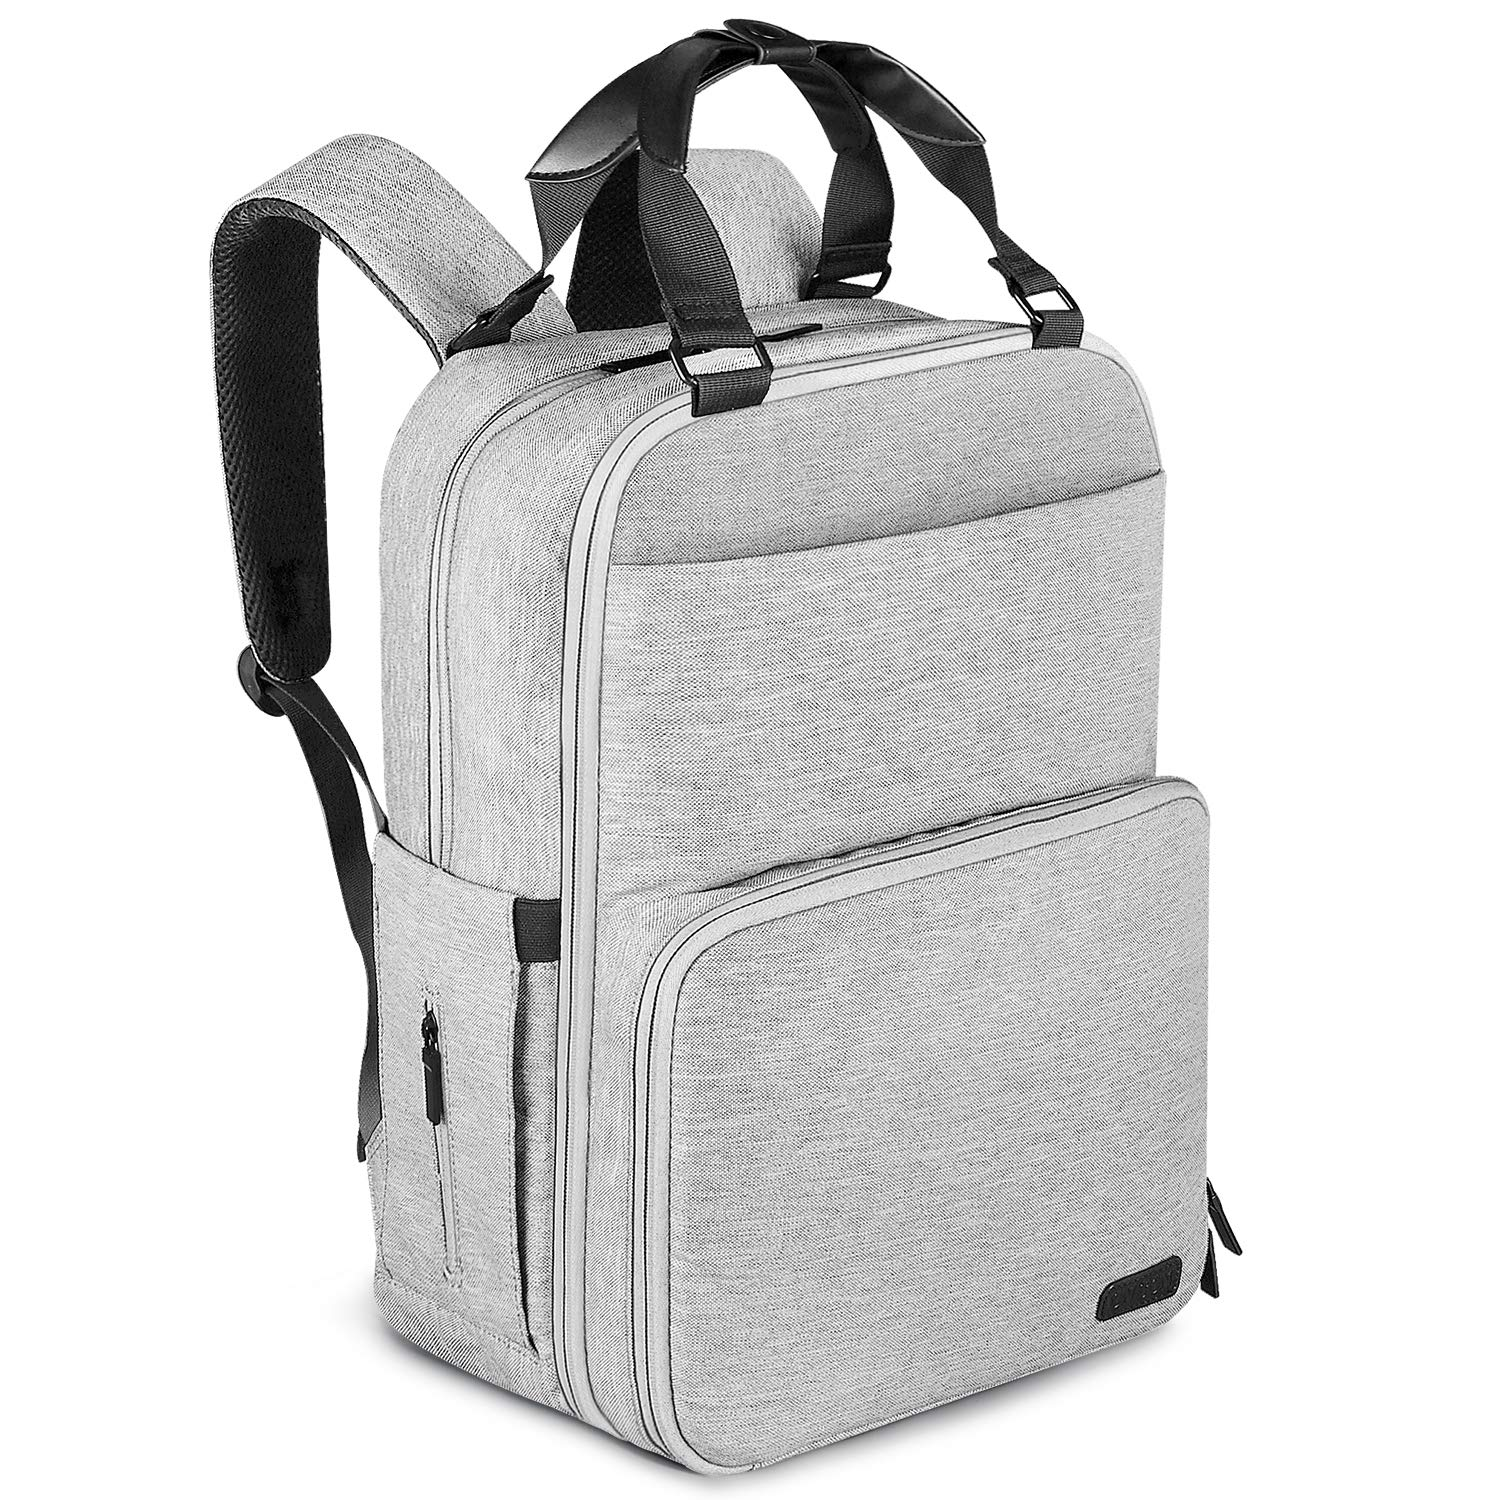 Diaper Bag Backpack, ONSON Multifunction Waterproof Travel BackPack Maternity Baby Nappy Changing Bags with Insulated Pockets, Stroller Straps, Large Capacity, Stylish, Gray by ONSON